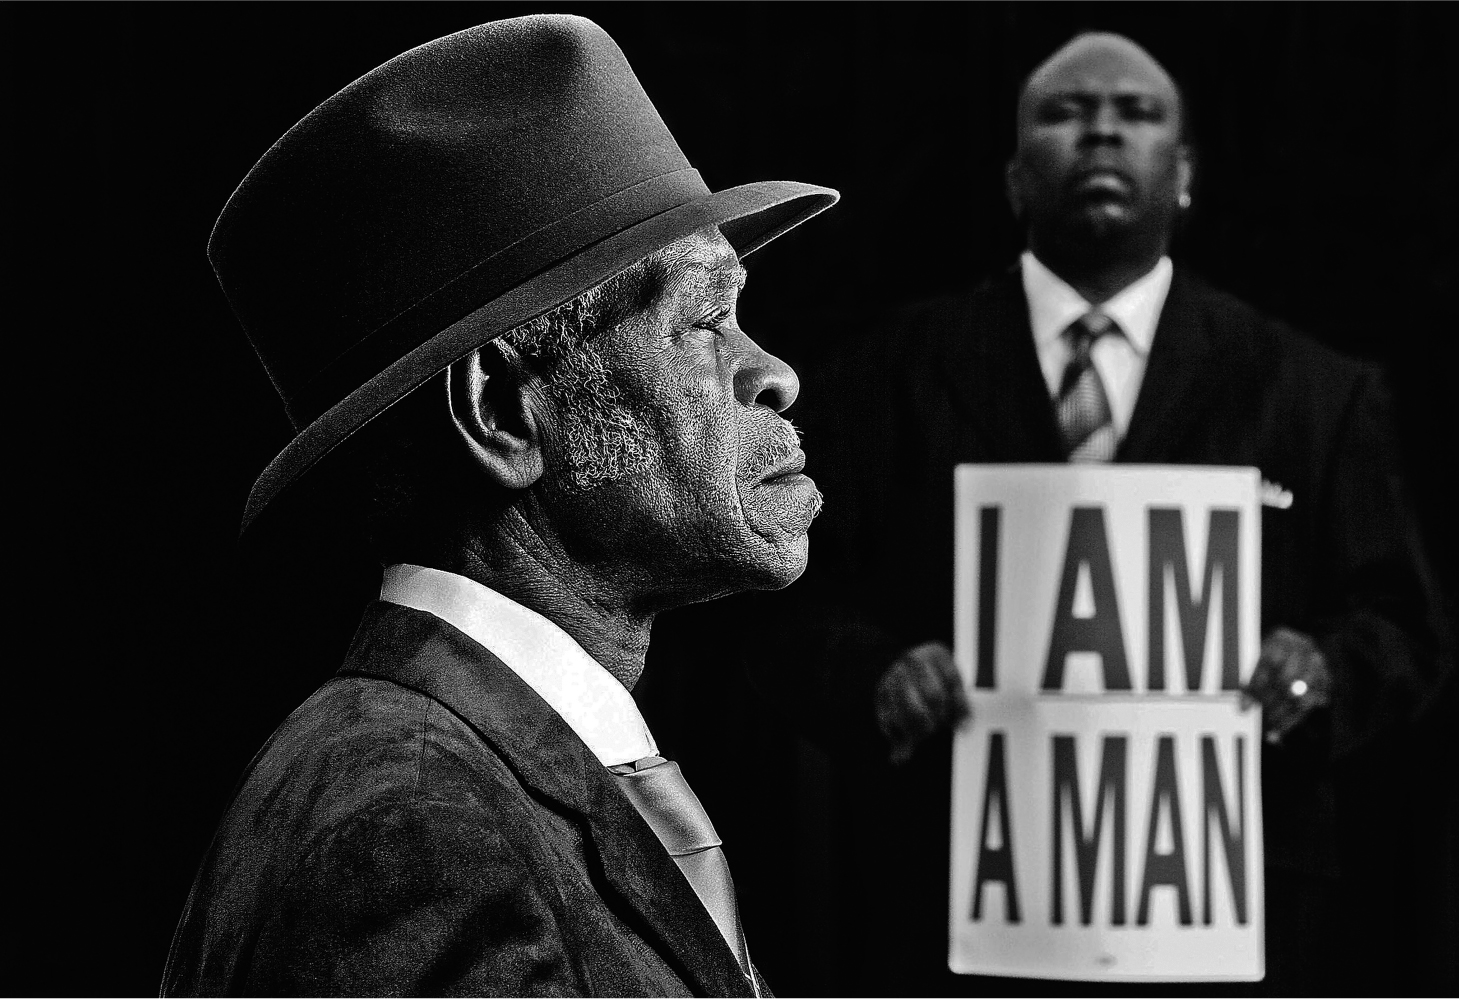 Art on the plaza:Carl Juste I Am A Man Memphis Tennessee, 2008 digital photograph courtesy of Carl Juste /Miami Herald Staff